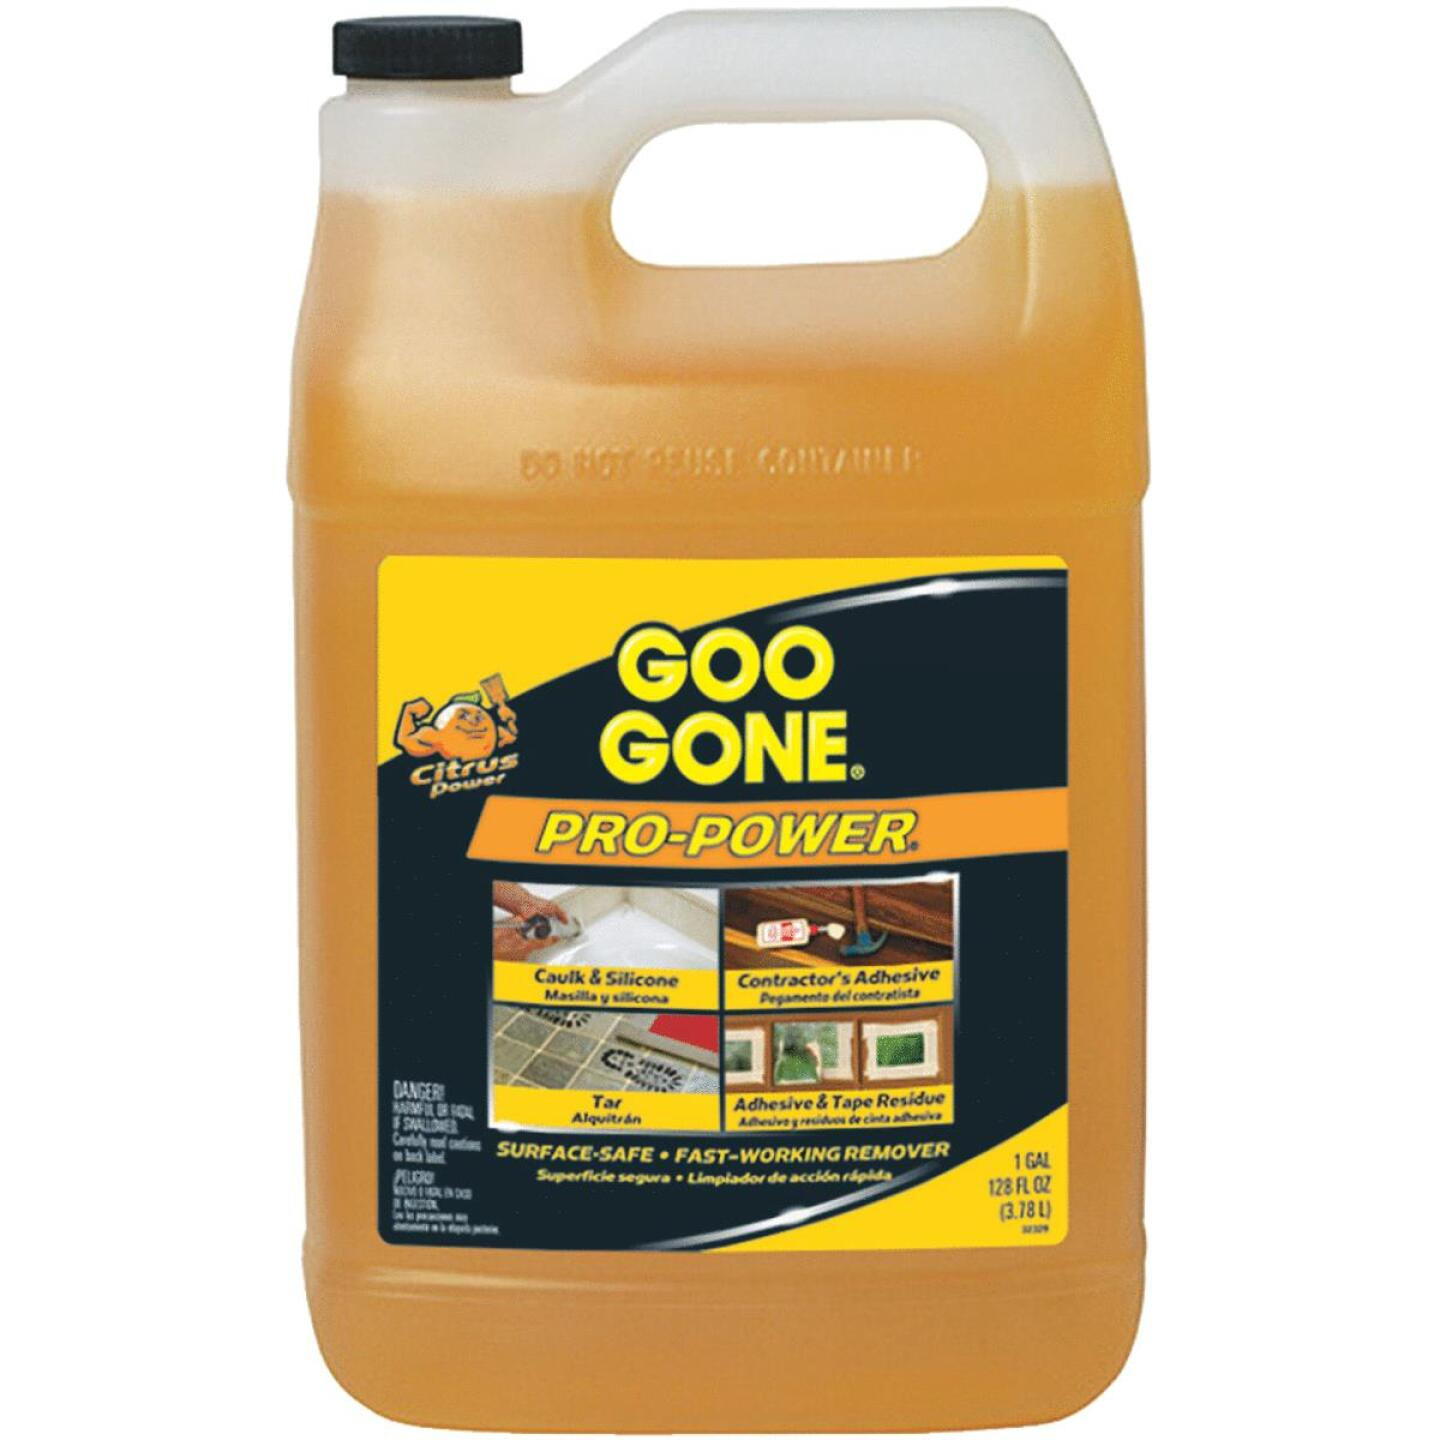 Goo Gone 1 Gal. Pro-Power Adhesive Remover Image 331